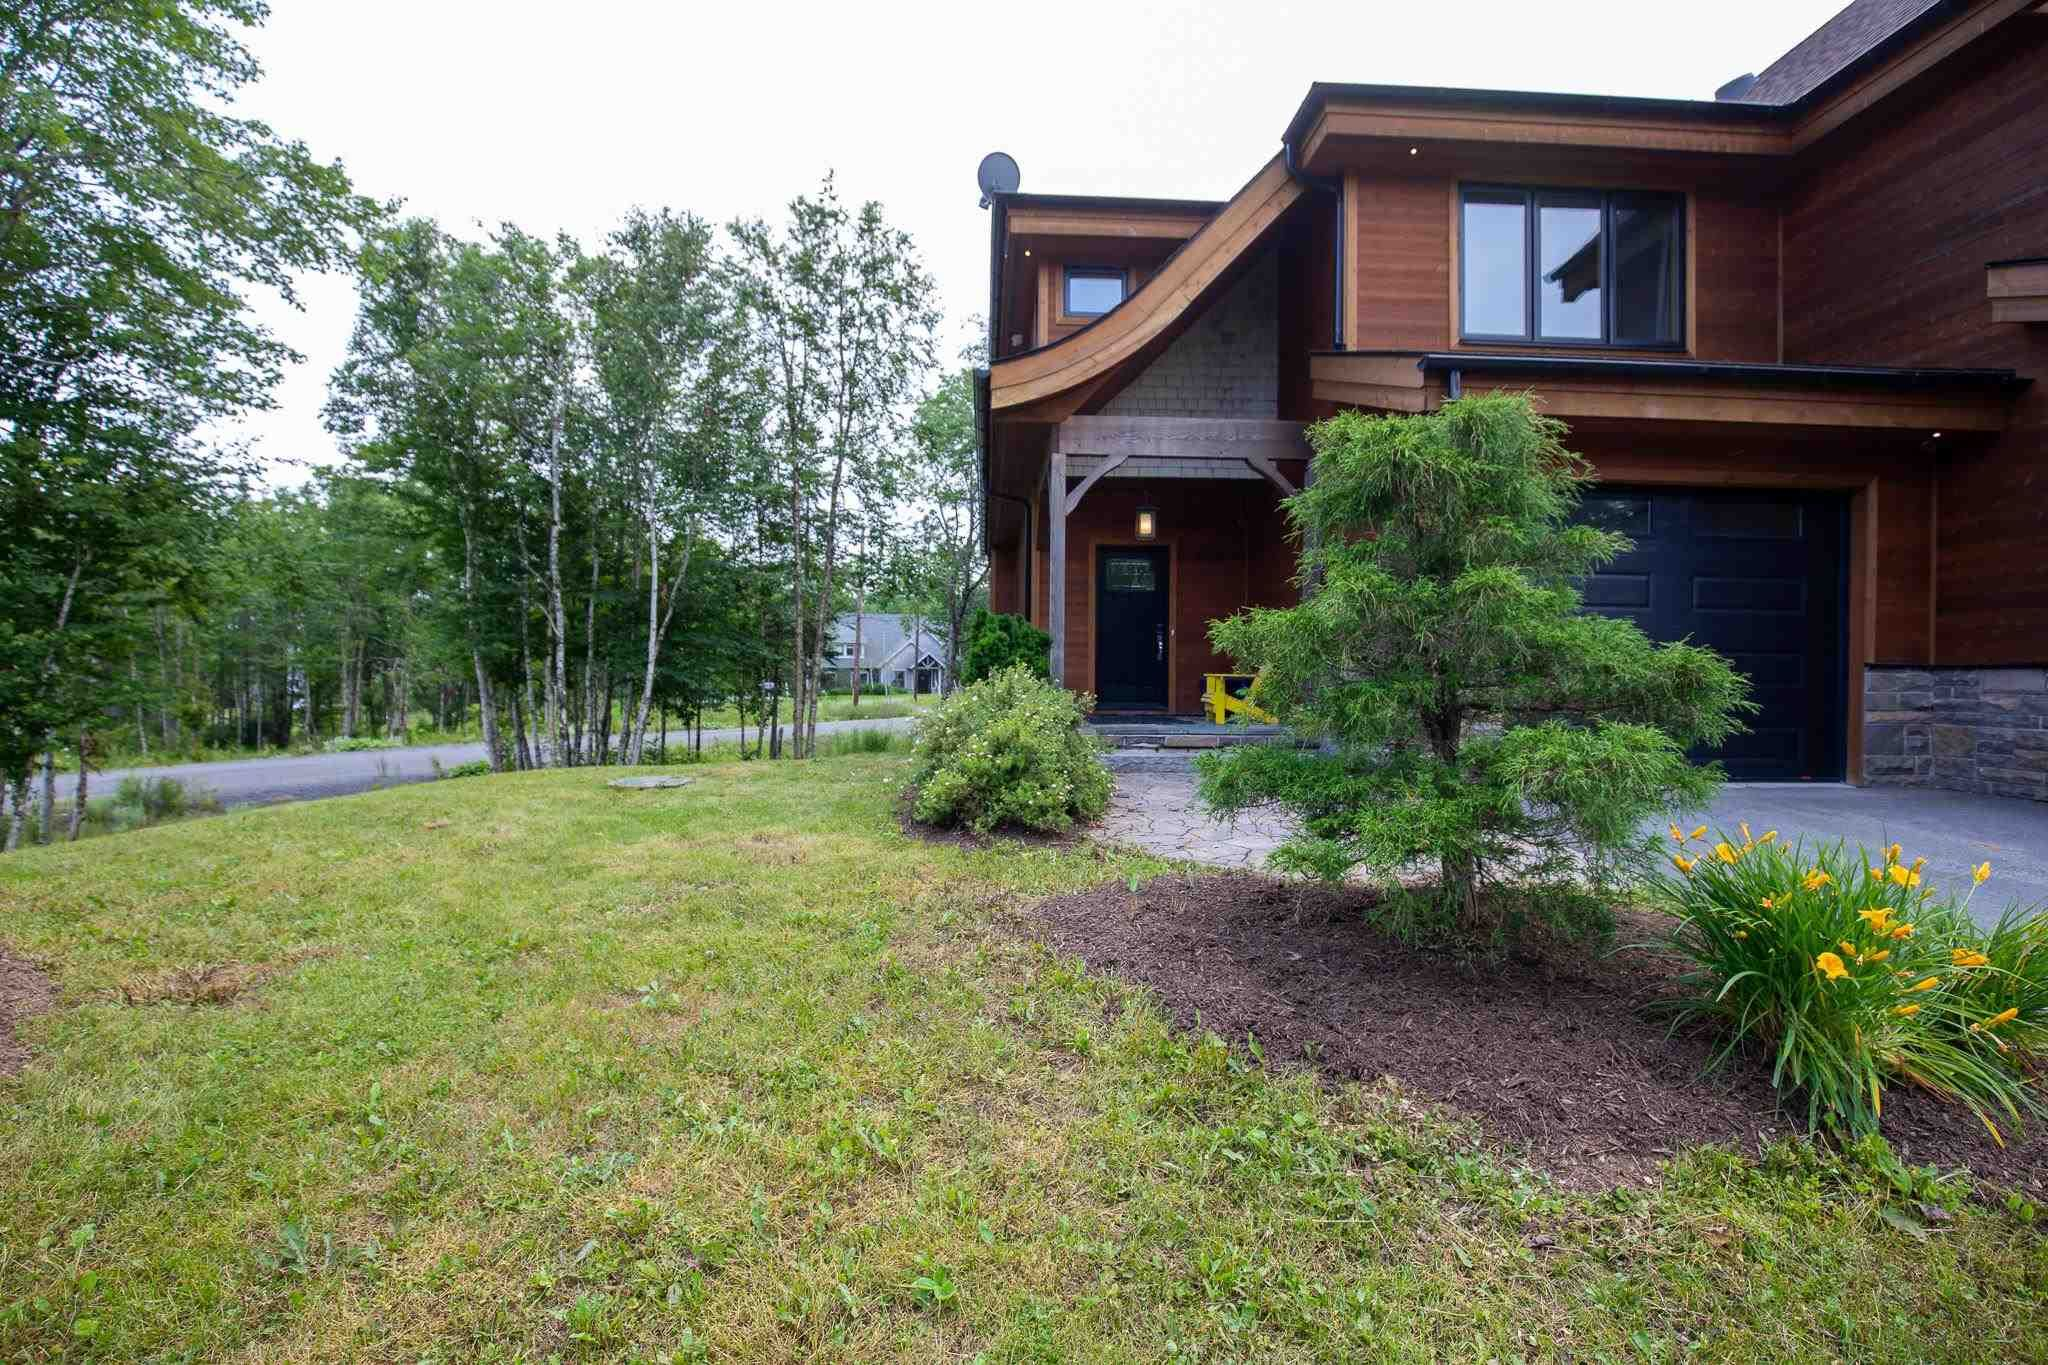 Photo 2: Photos: 7 Black Cherry Lane in Ardoise: 403-Hants County Residential for sale (Annapolis Valley)  : MLS®# 202118682